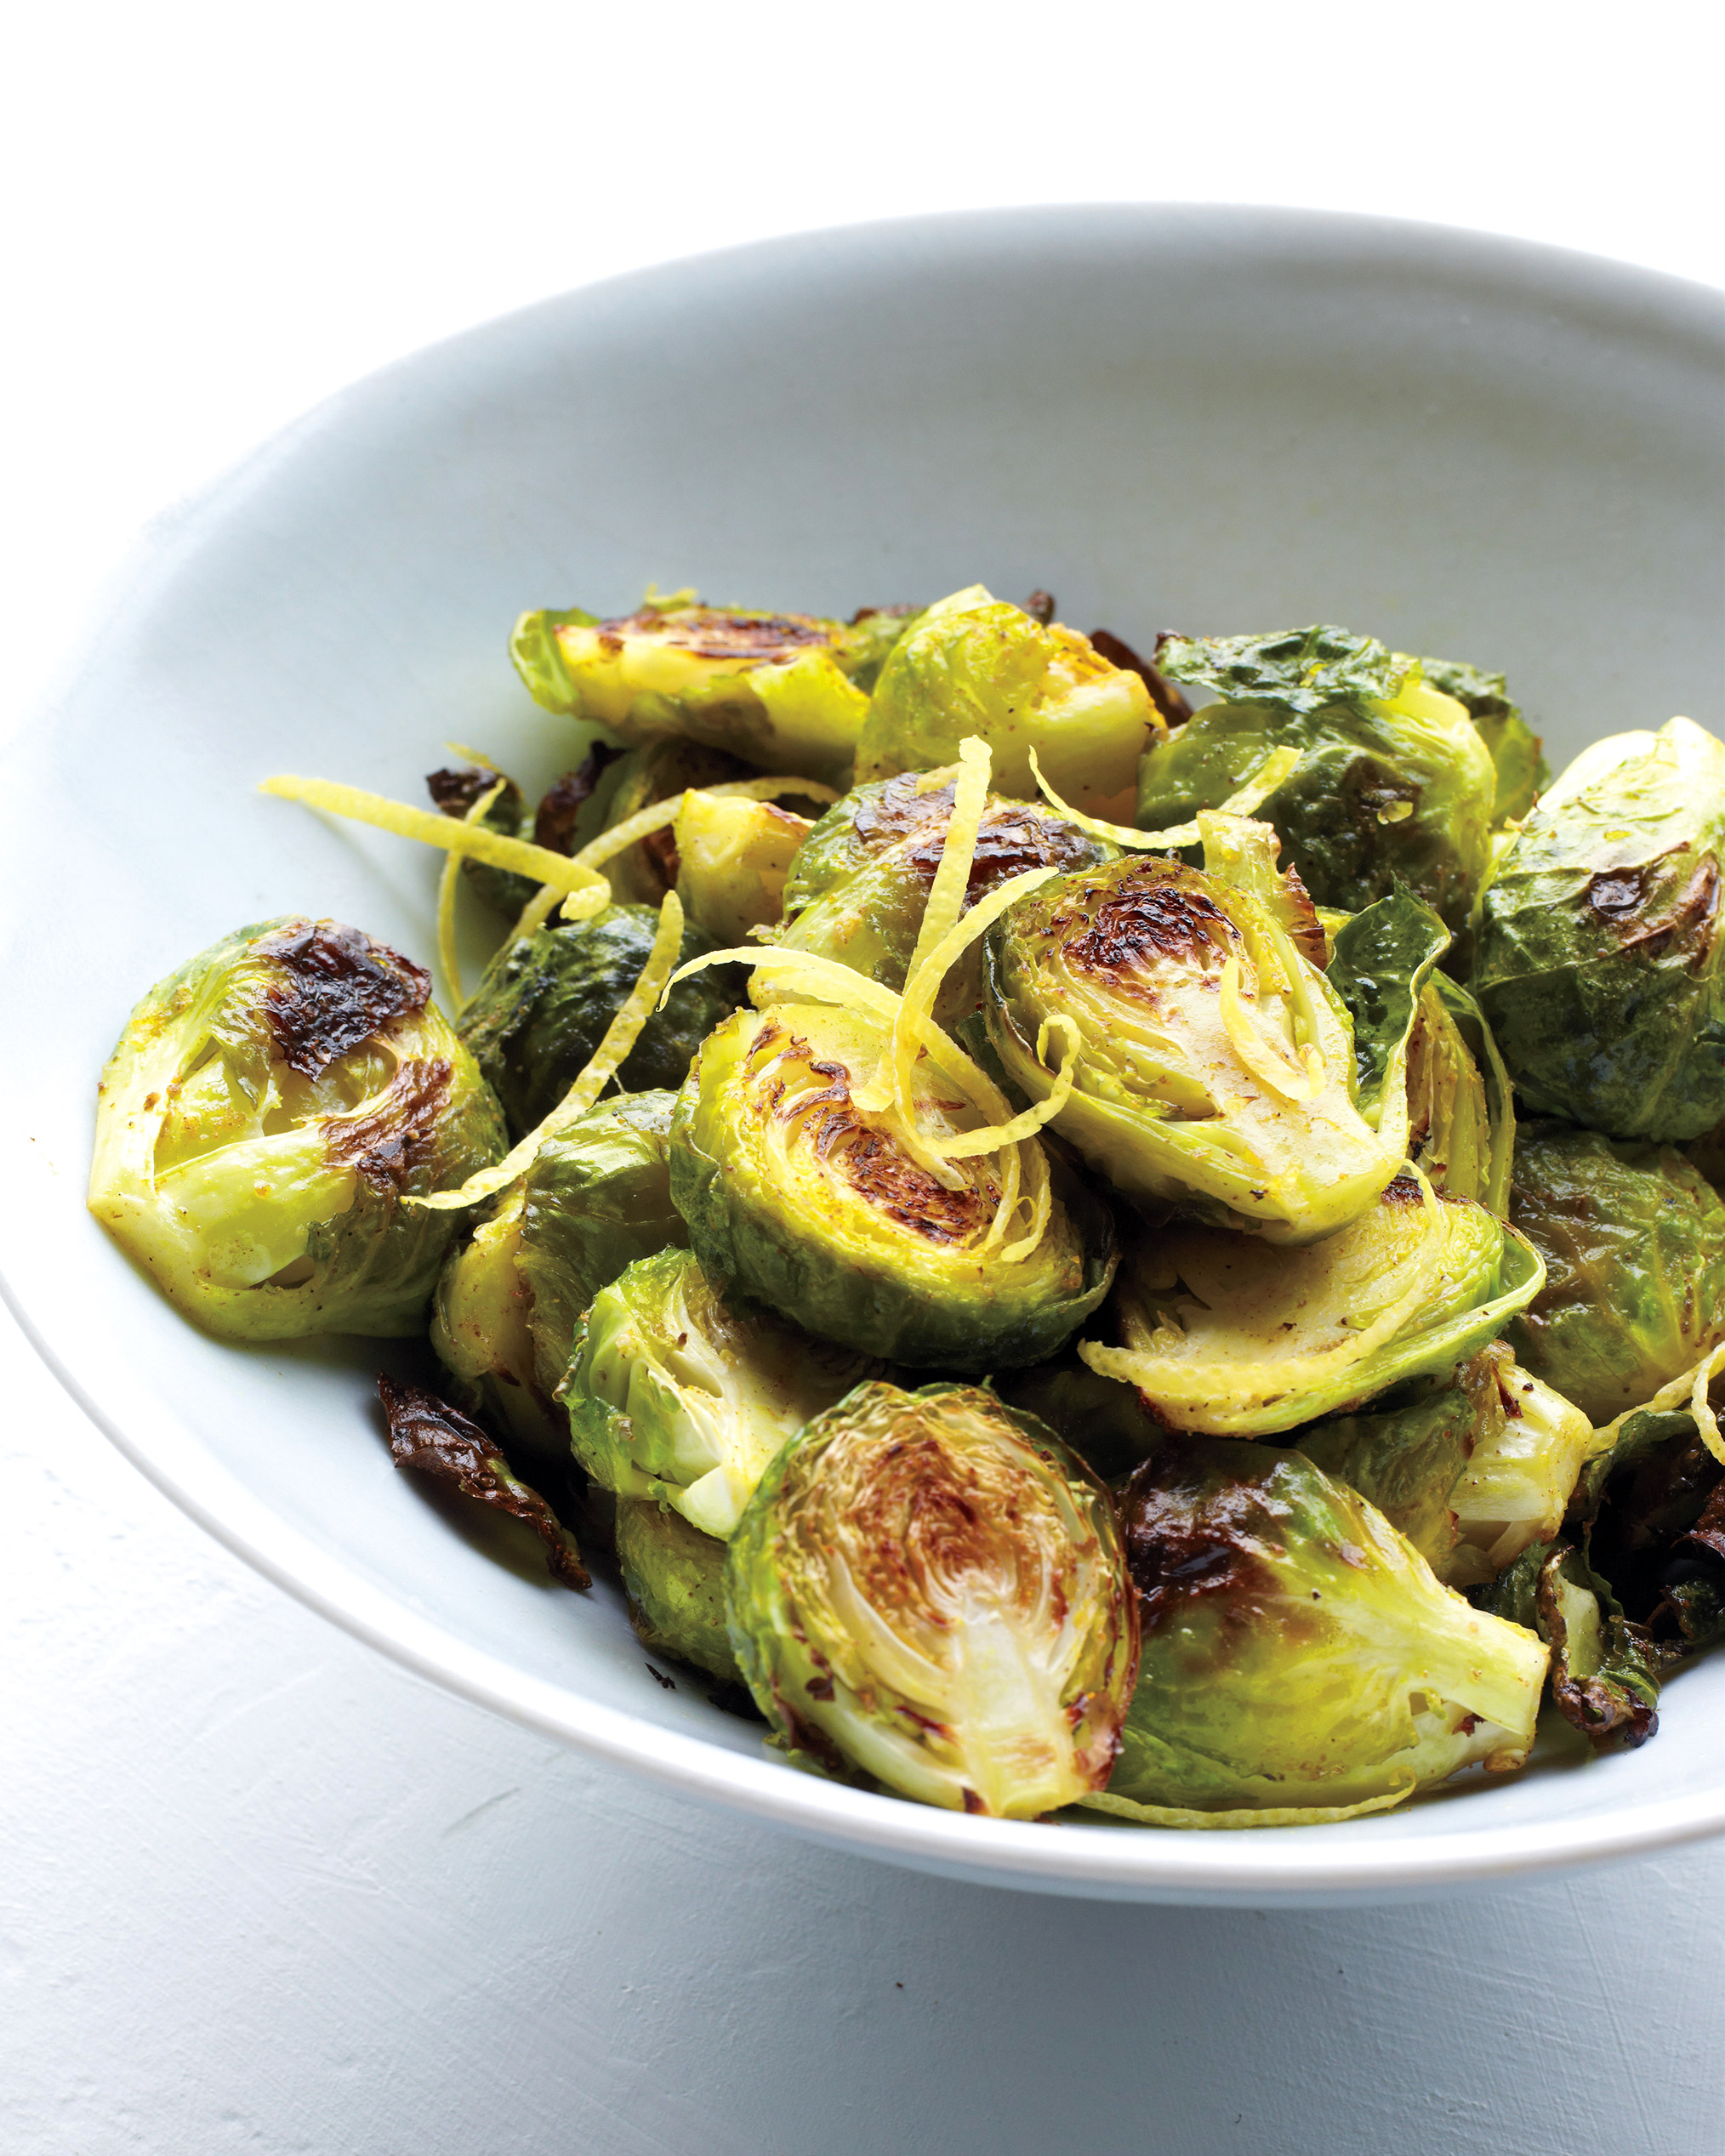 med106155_1110_sid_brussels_sprouts.jpg